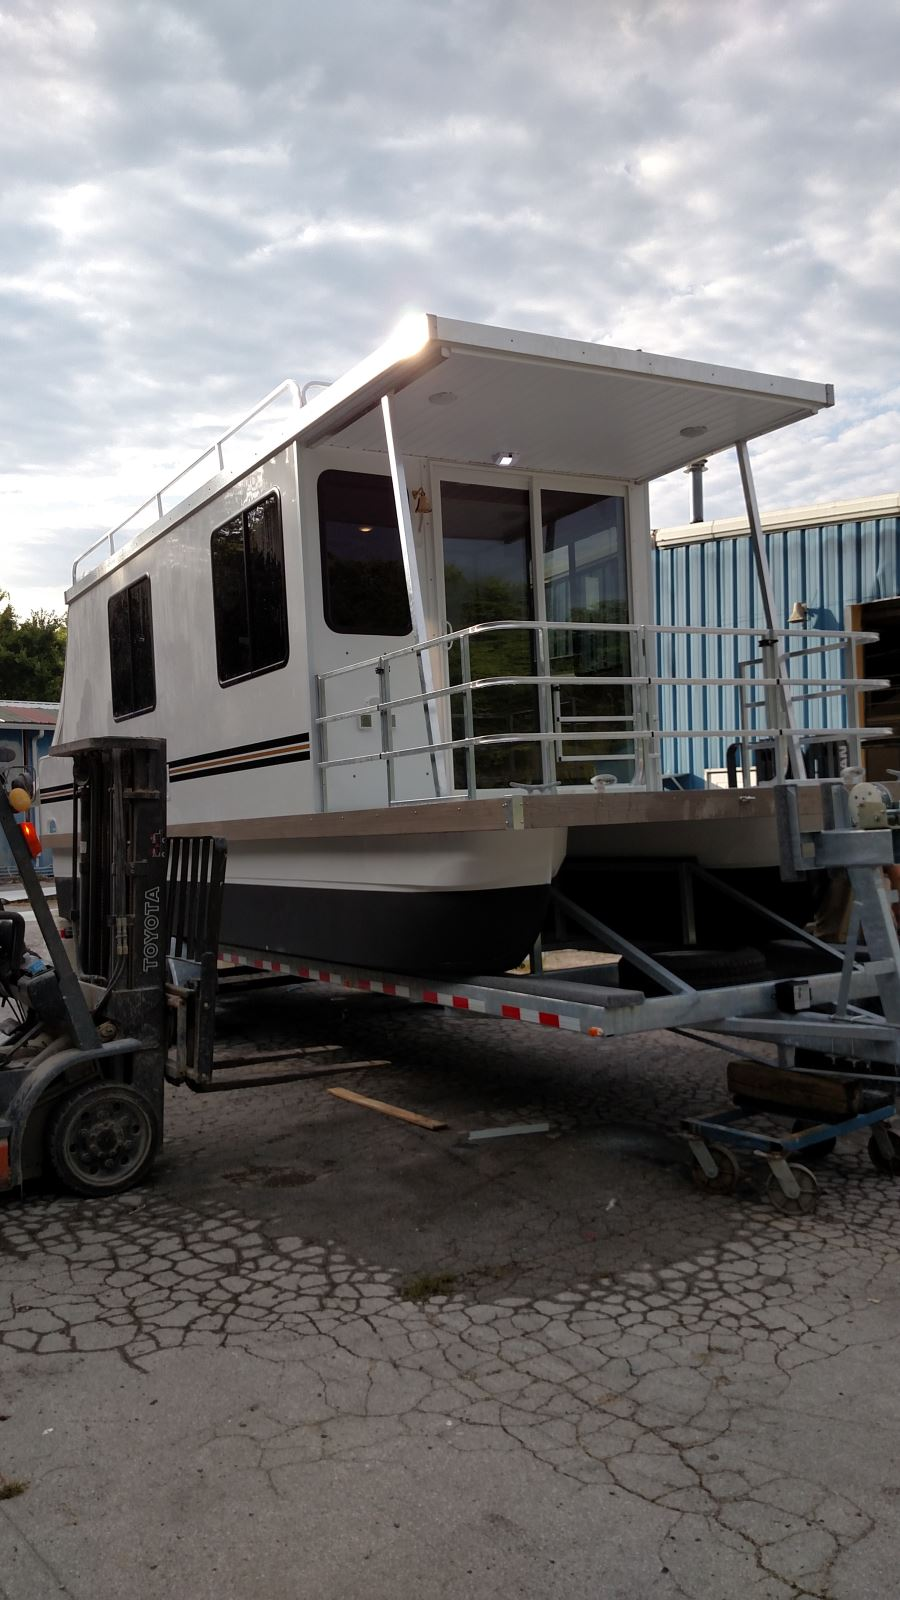 Trailerable Houseboats Images - Reverse Search